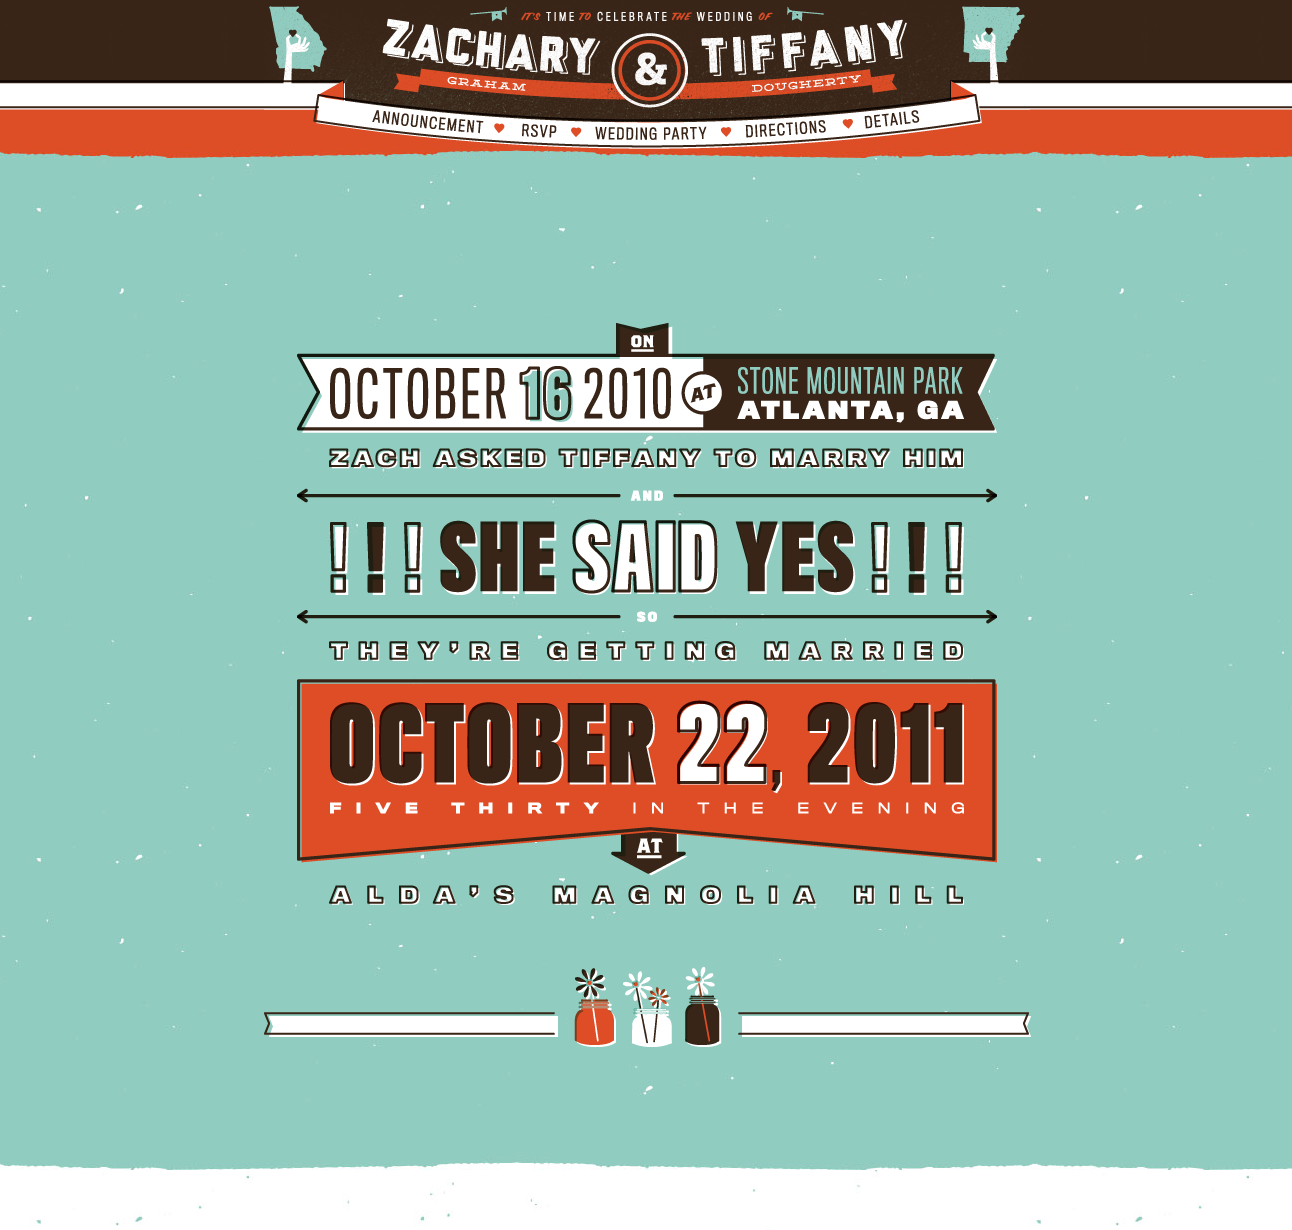 Zachary & Tiffany wedding website | Web Design | Pinterest ...